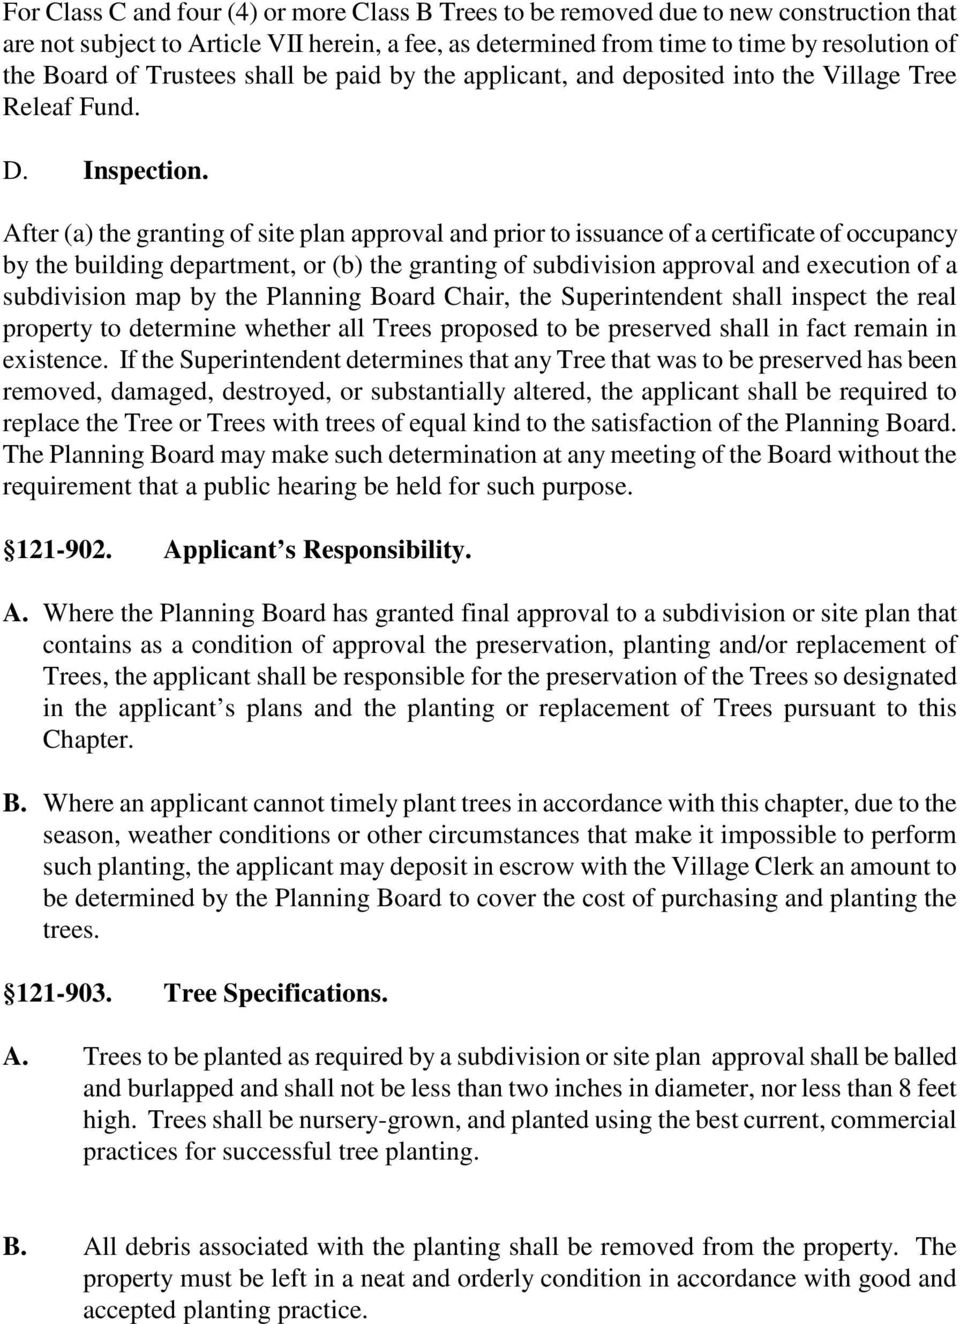 After (a) the granting of site plan approval and prior to issuance of a certificate of occupancy by the building department, or (b) the granting of subdivision approval and execution of a subdivision